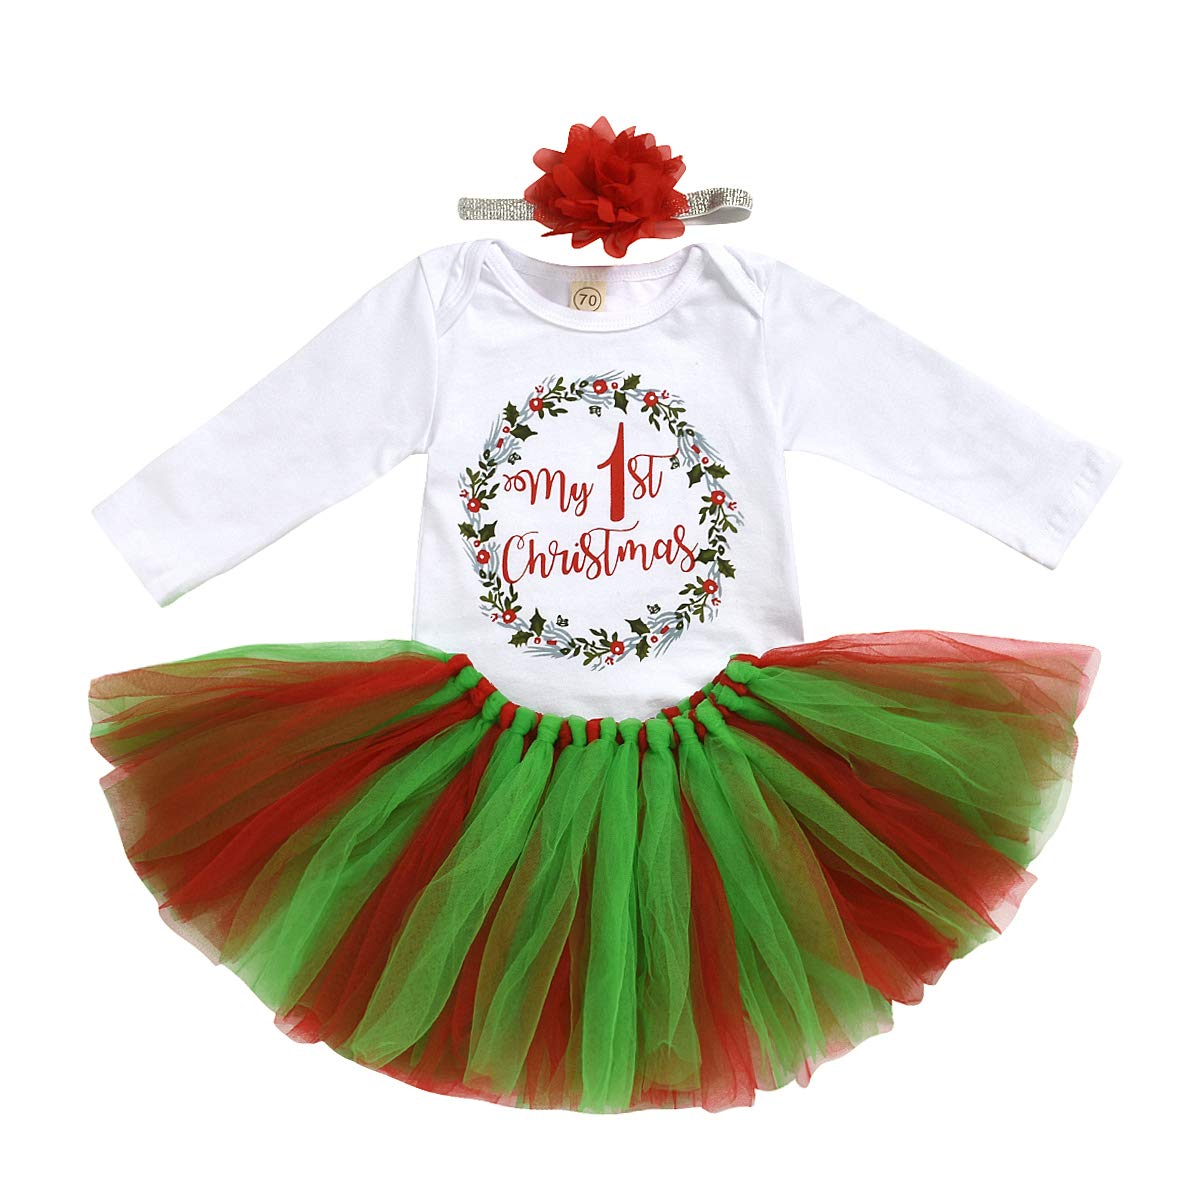 Baby Girls Christmas Outfit My 1st Christmas Romper with Tutu Dress and Baby Bow Headband Outfit Set